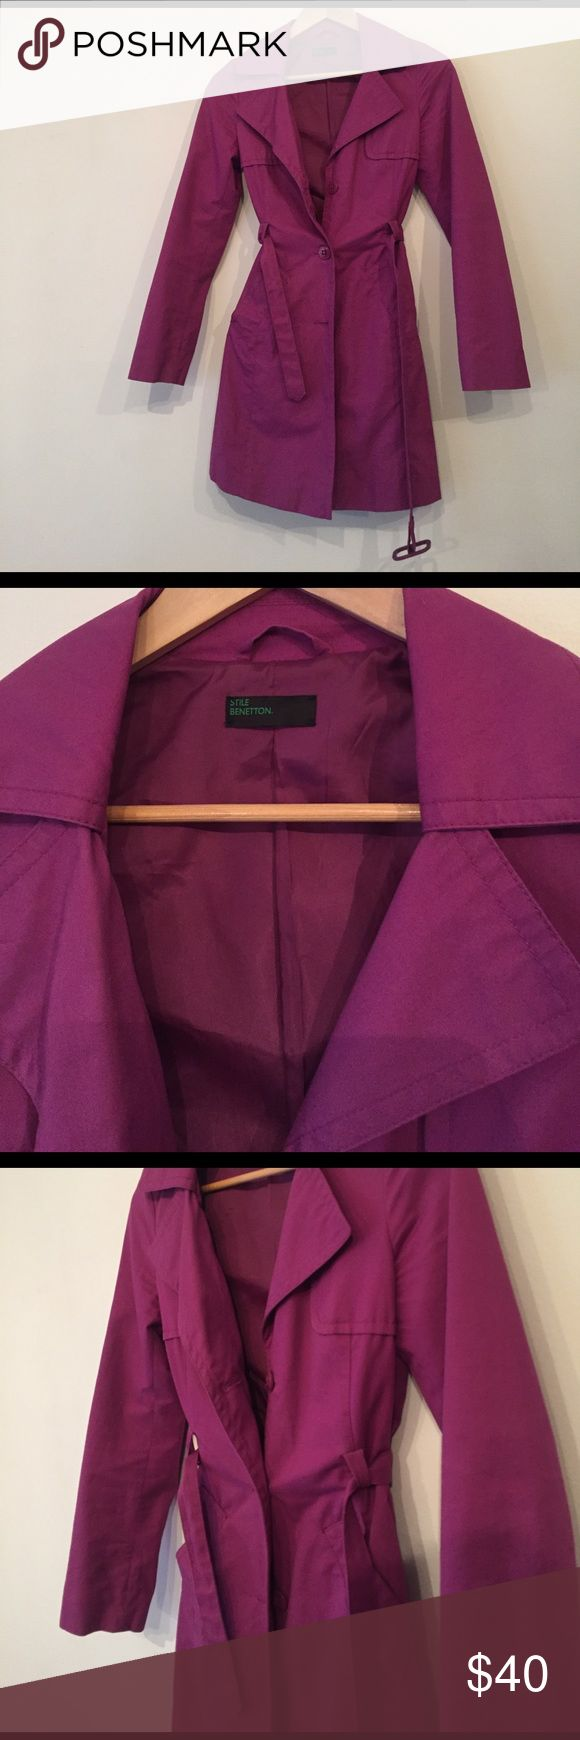 Benetton purple trench coat The colour is lovely and fits well to body. Great condition. Eu size 38. I would say fits like a 0/xs Jackets & Coats Trench Coats